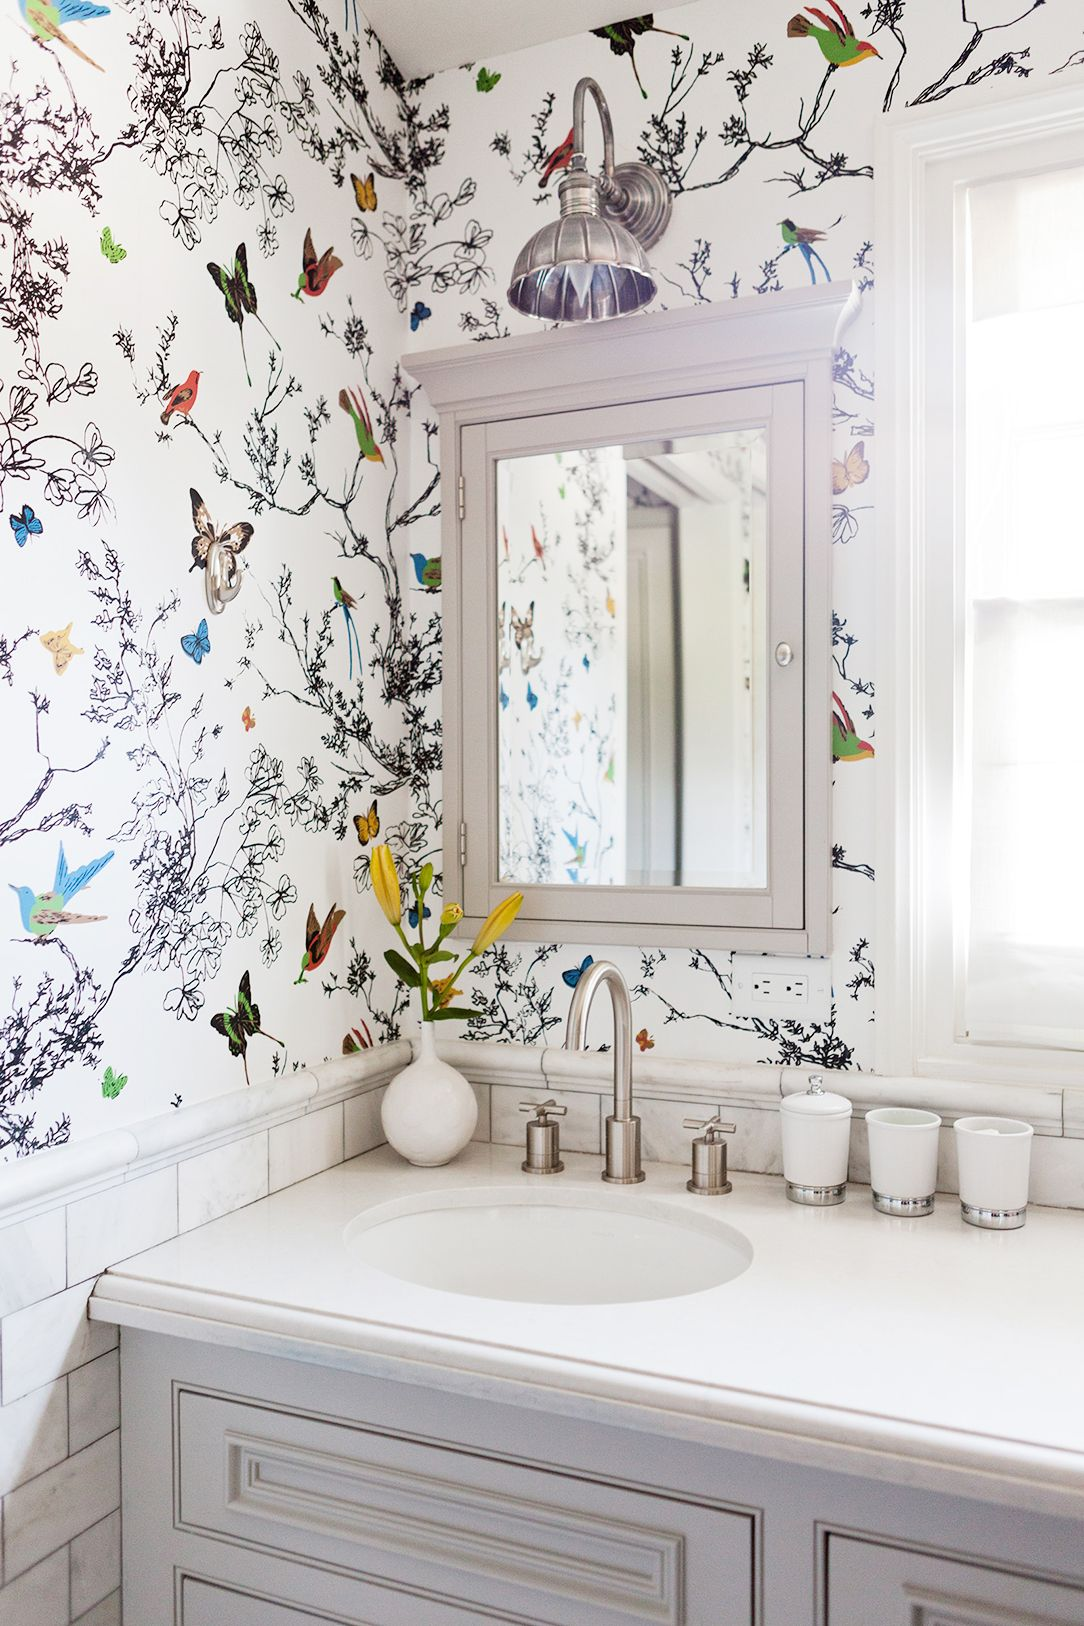 Erfly Wallpaper In Bathroom With Small Fl Arrangement